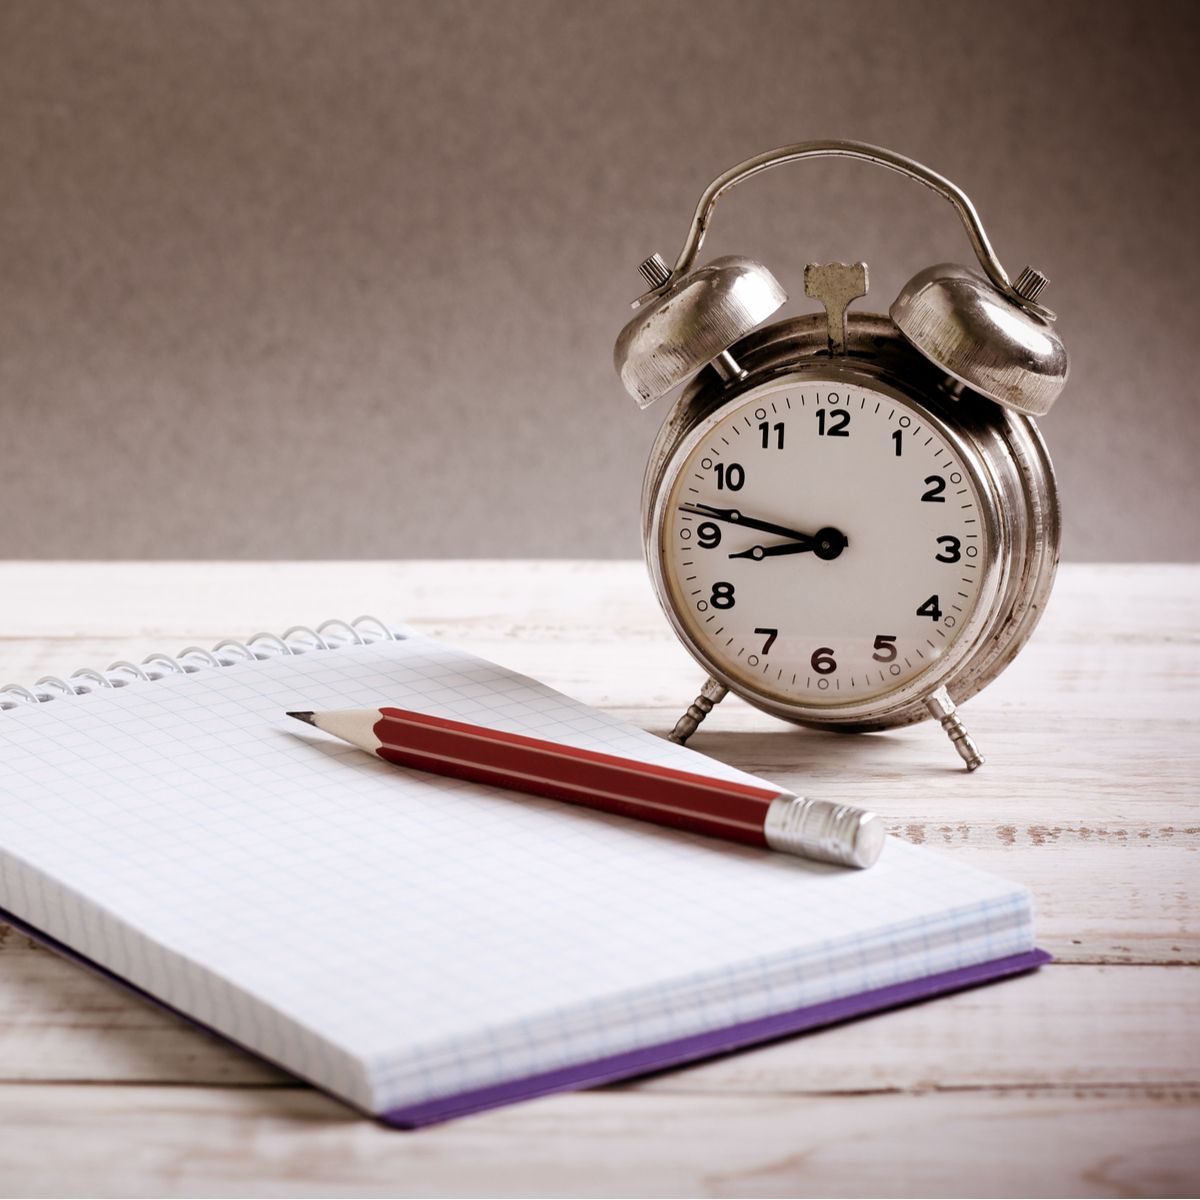 80/20 Rule For Time Management.